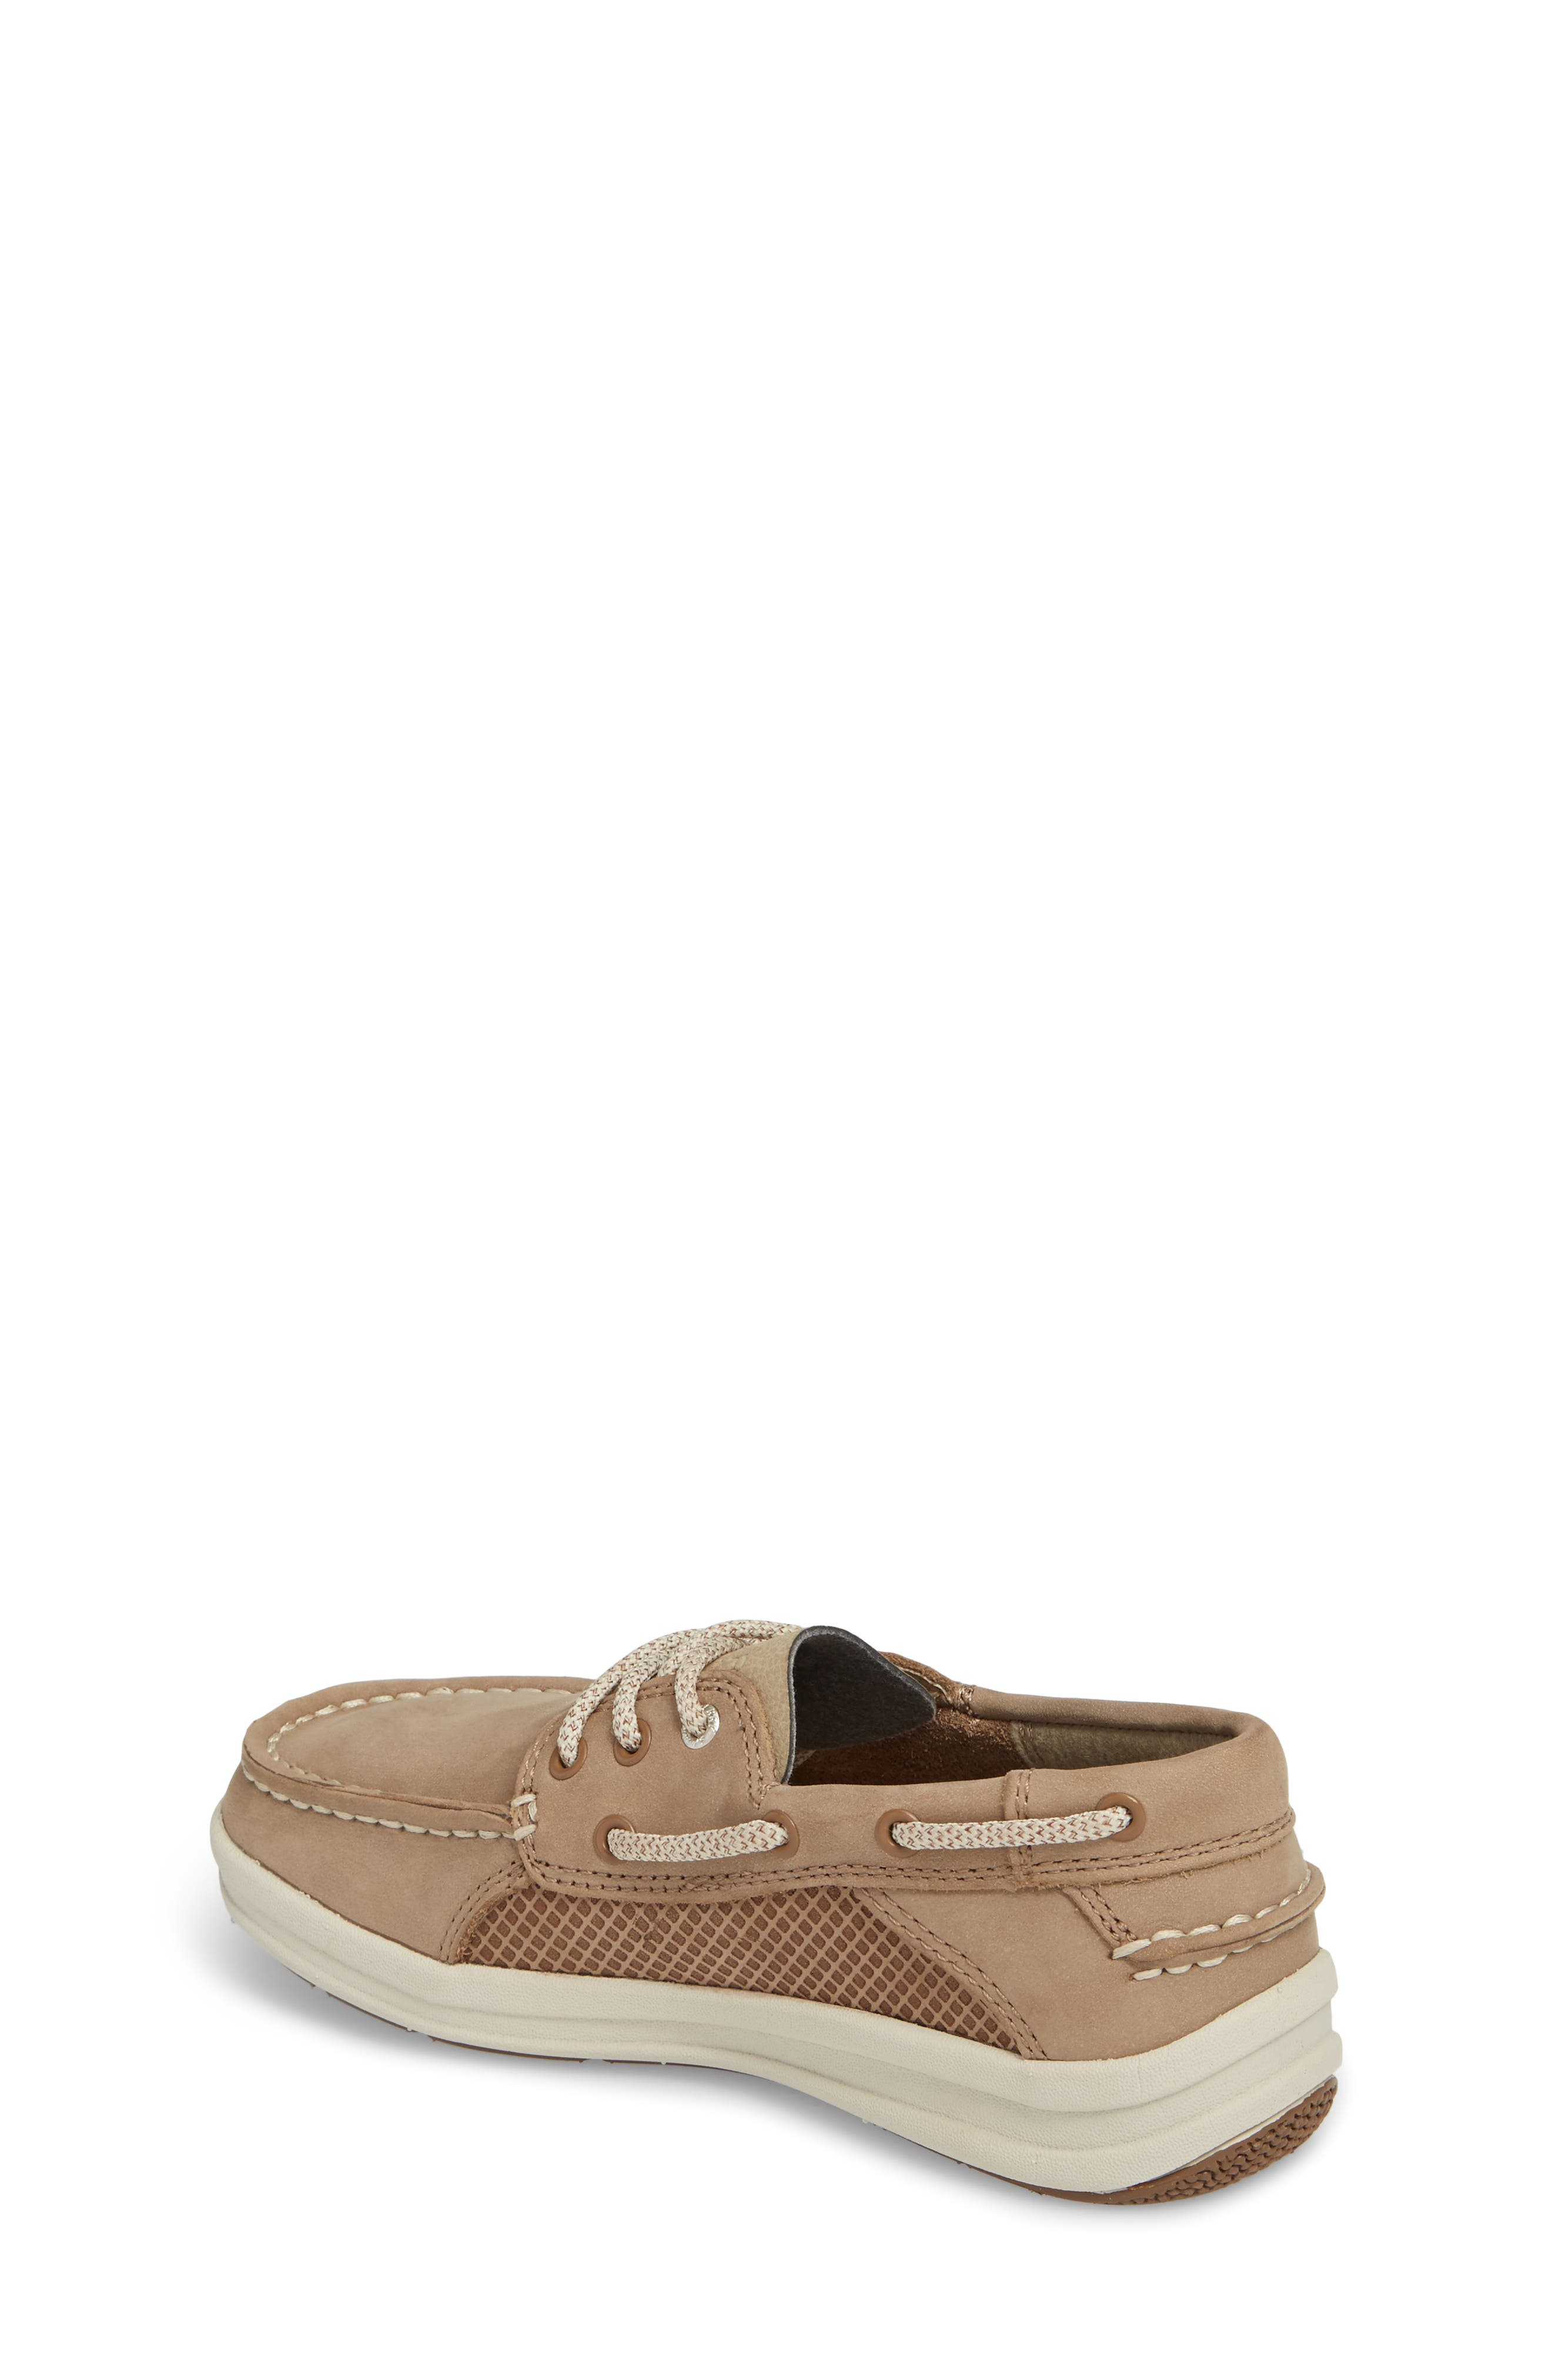 Sperry Gamefish Boat Shoe,                             Alternate thumbnail 2, color,                             Light Tan Leather